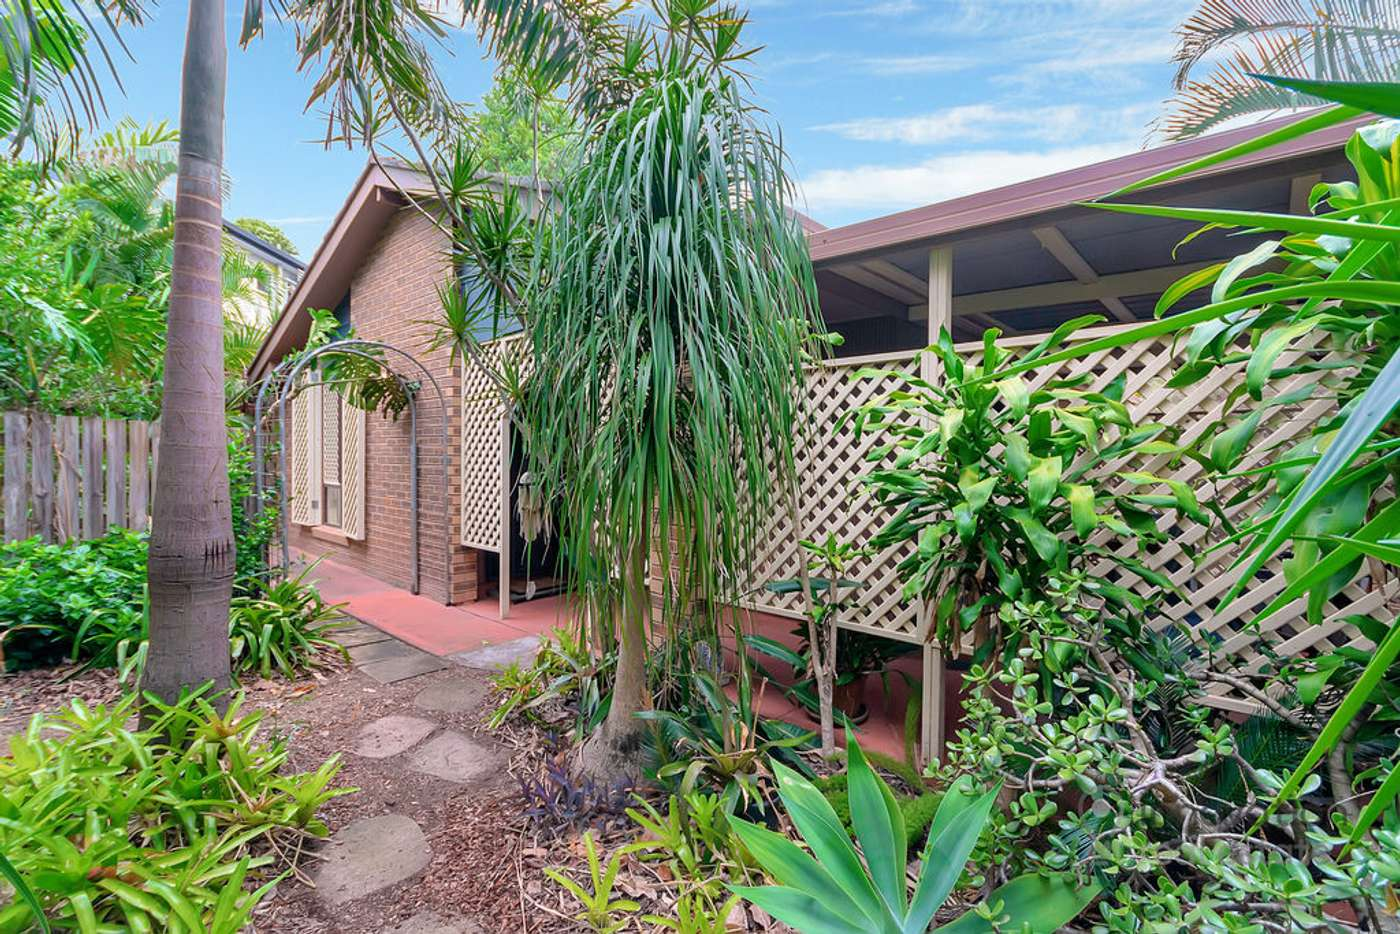 Main view of Homely house listing, 8 Hazelton St, Riverhills QLD 4074